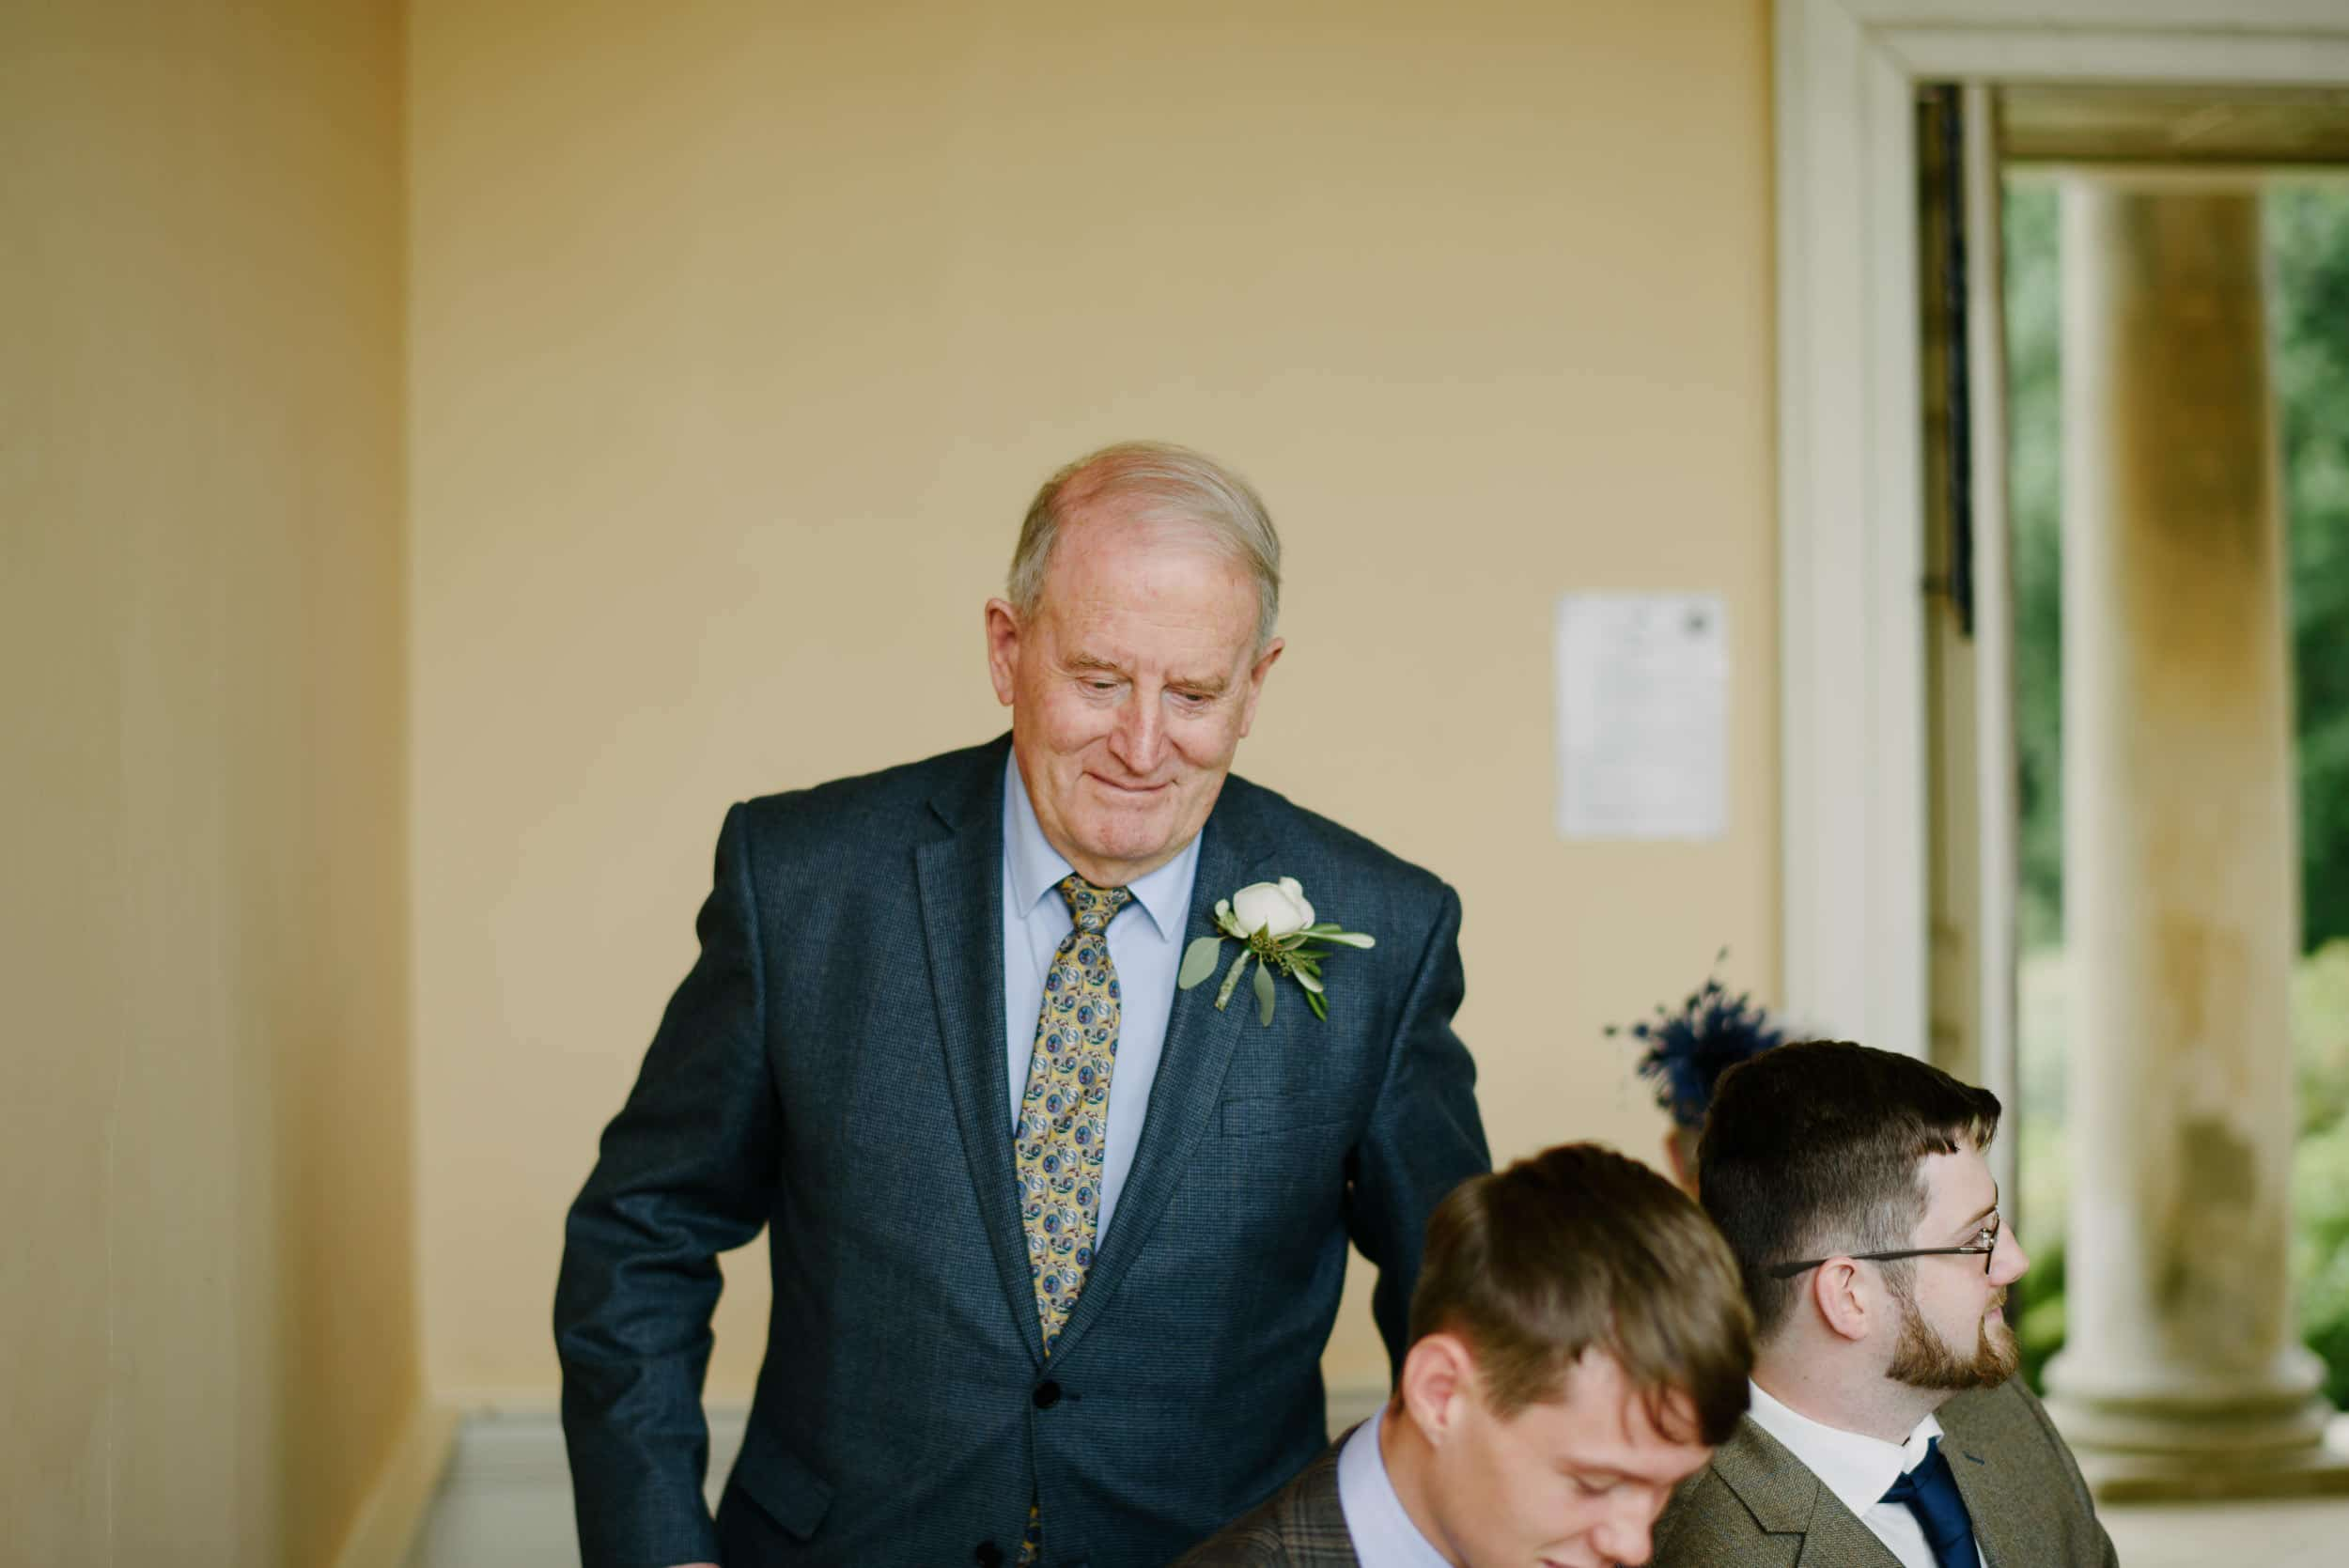 Suzy & Mike - Blickling Hall Wedding 17